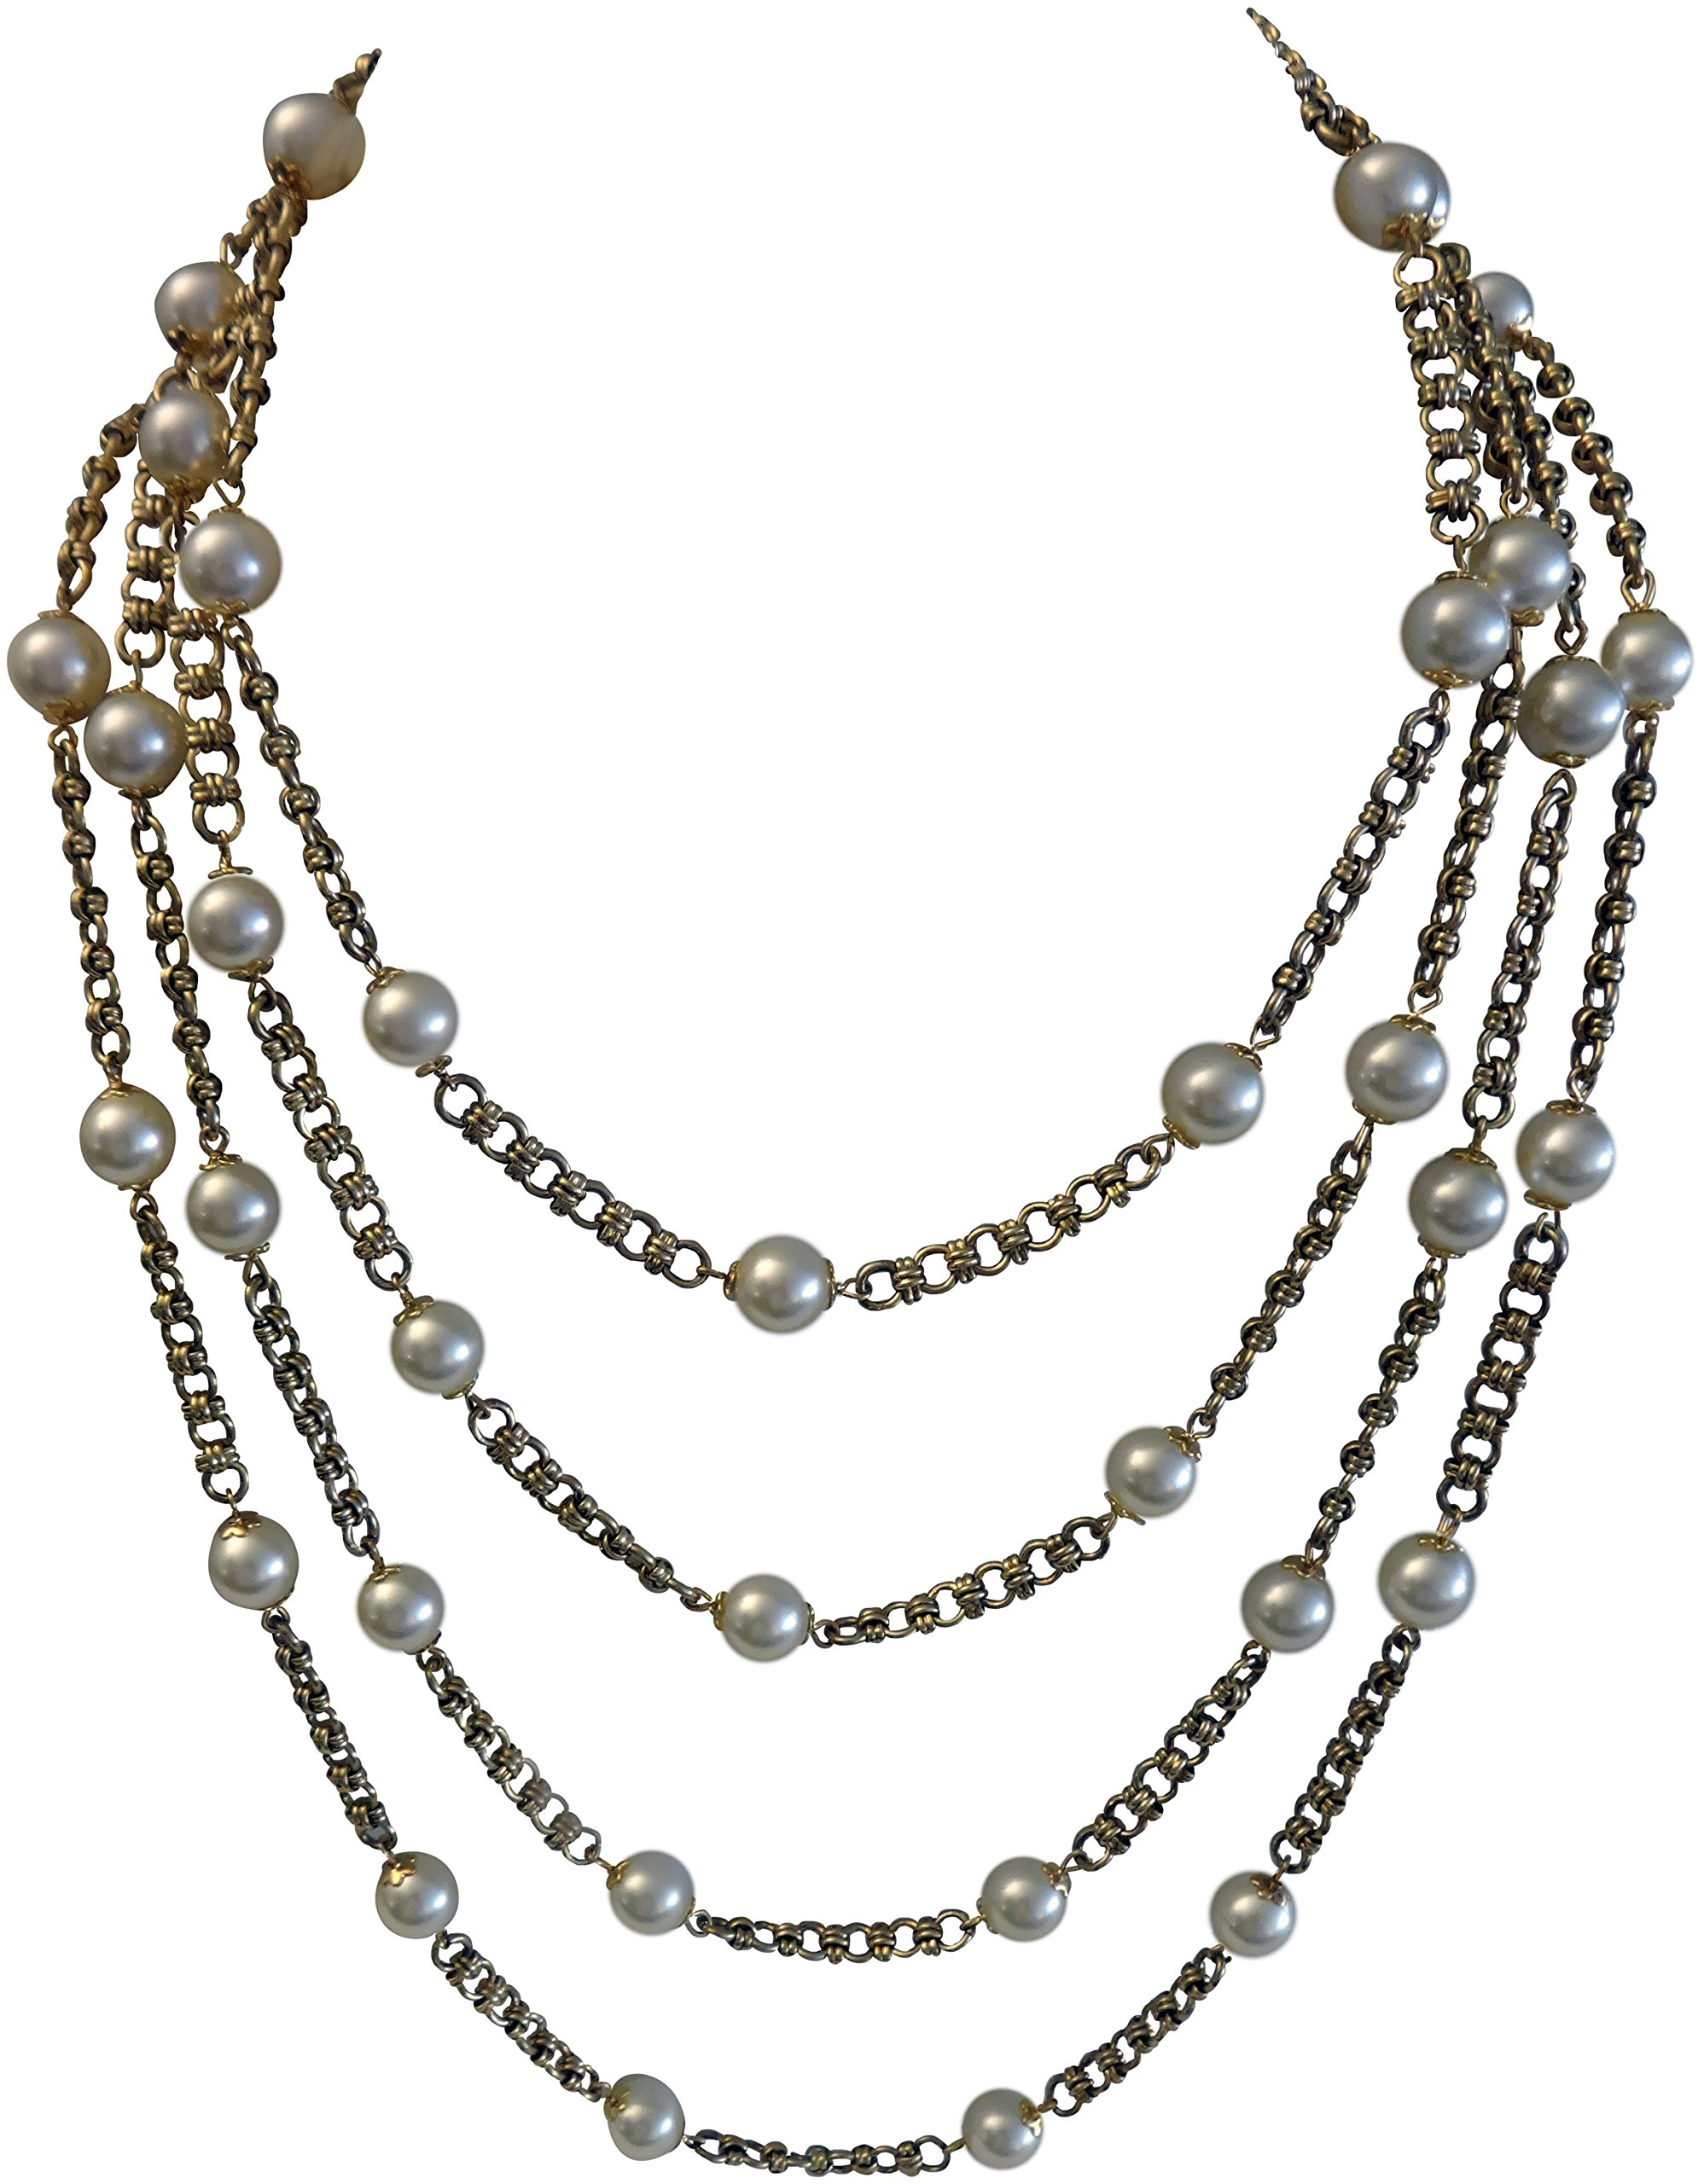 Kenneth Jay Lane-4 Row Gold Chain with White Pearl Stations Necklace by Kenneth Jay Lane